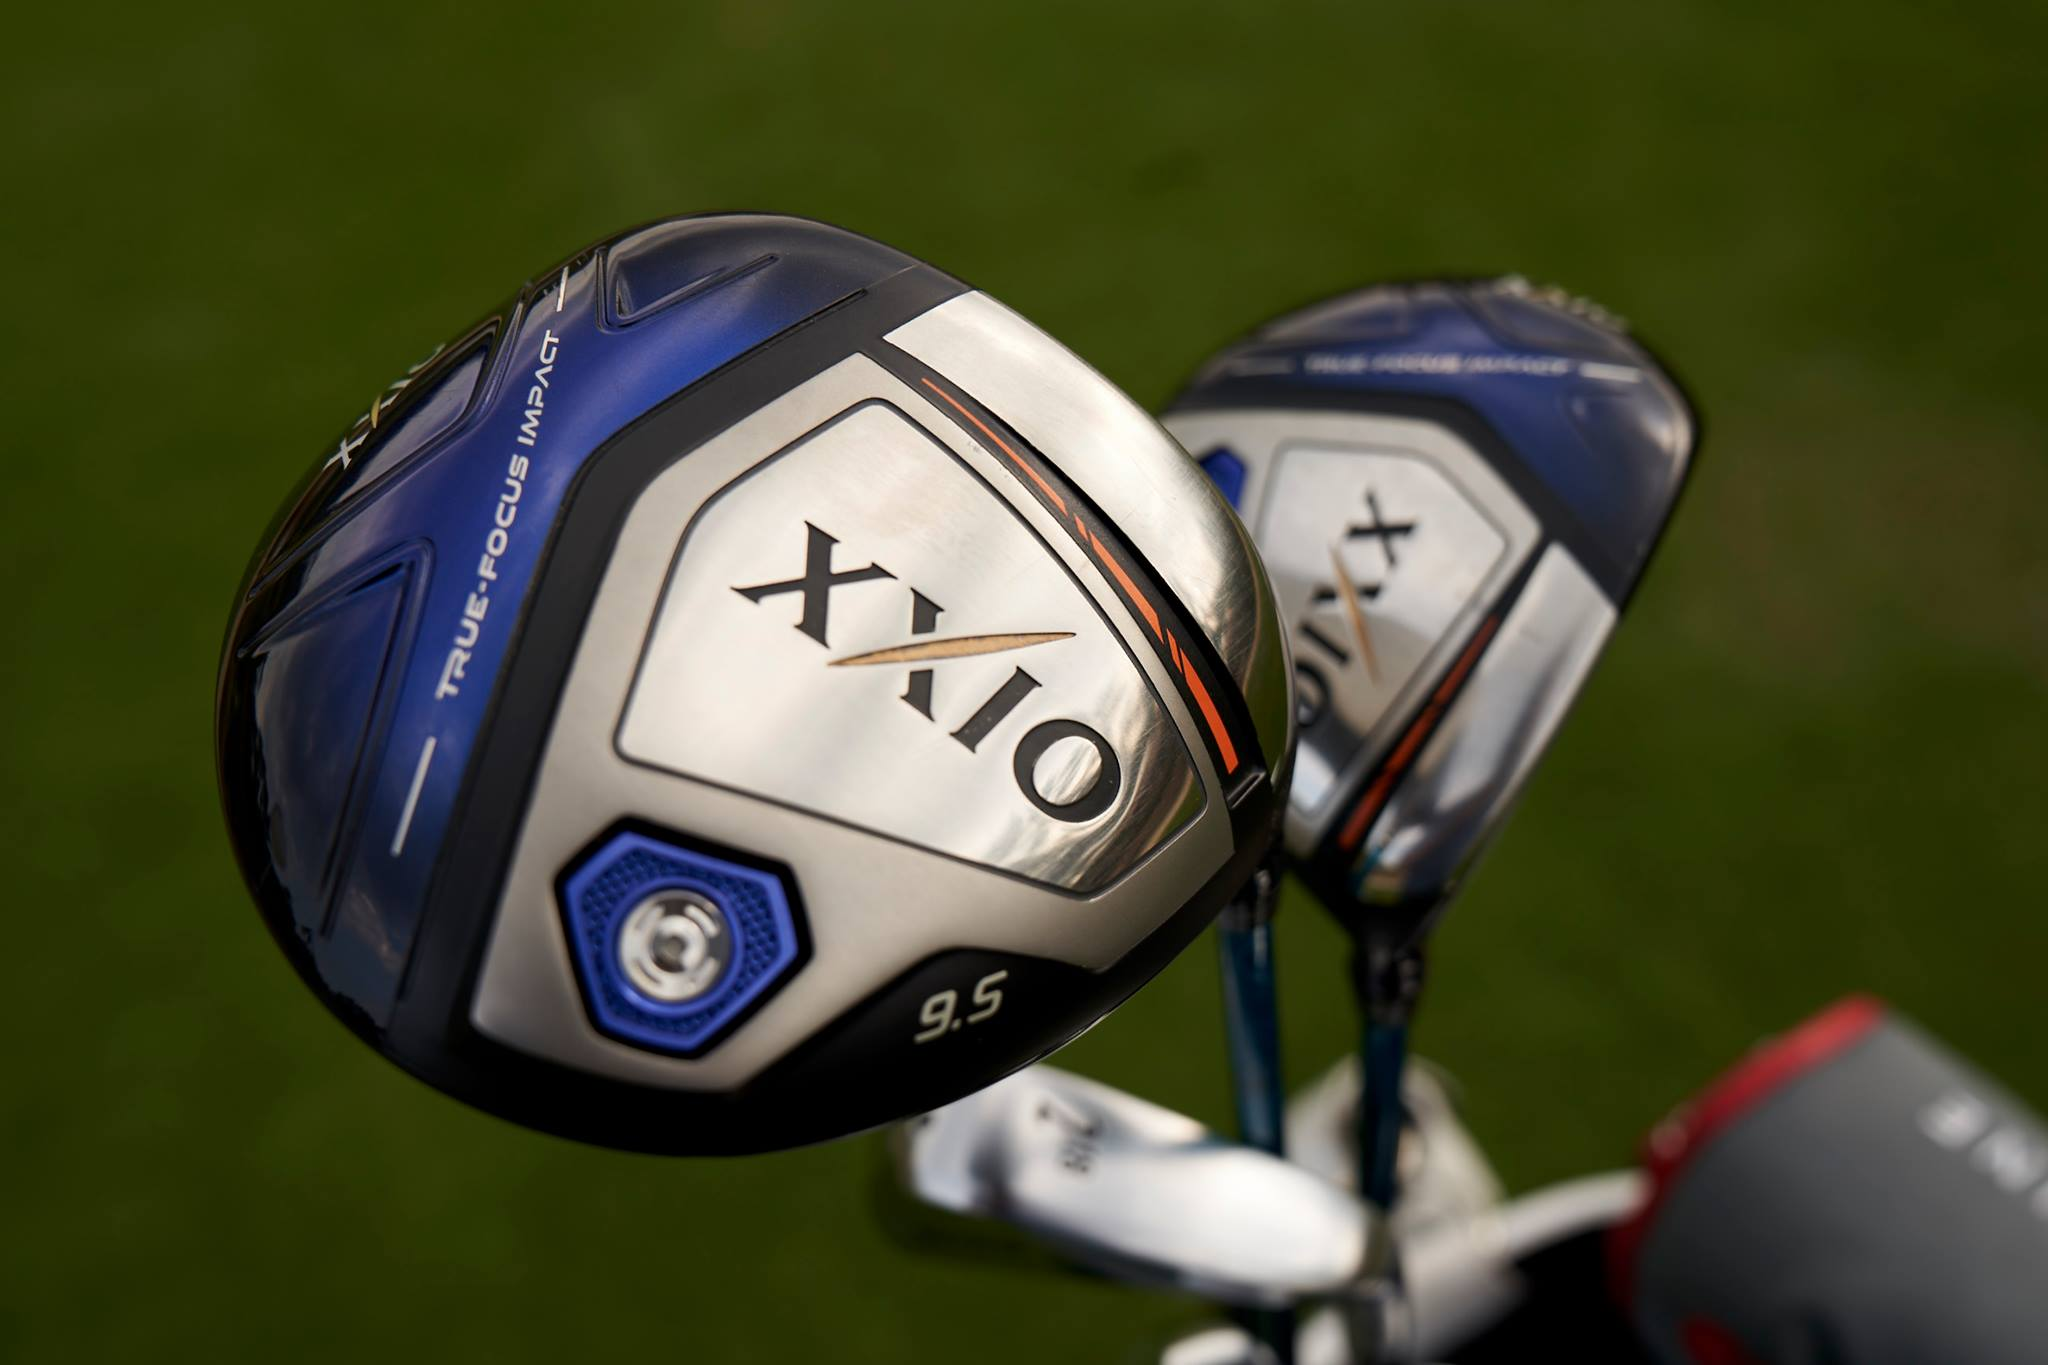 XXIO Golf Demo Day at  Puetz Golf - April